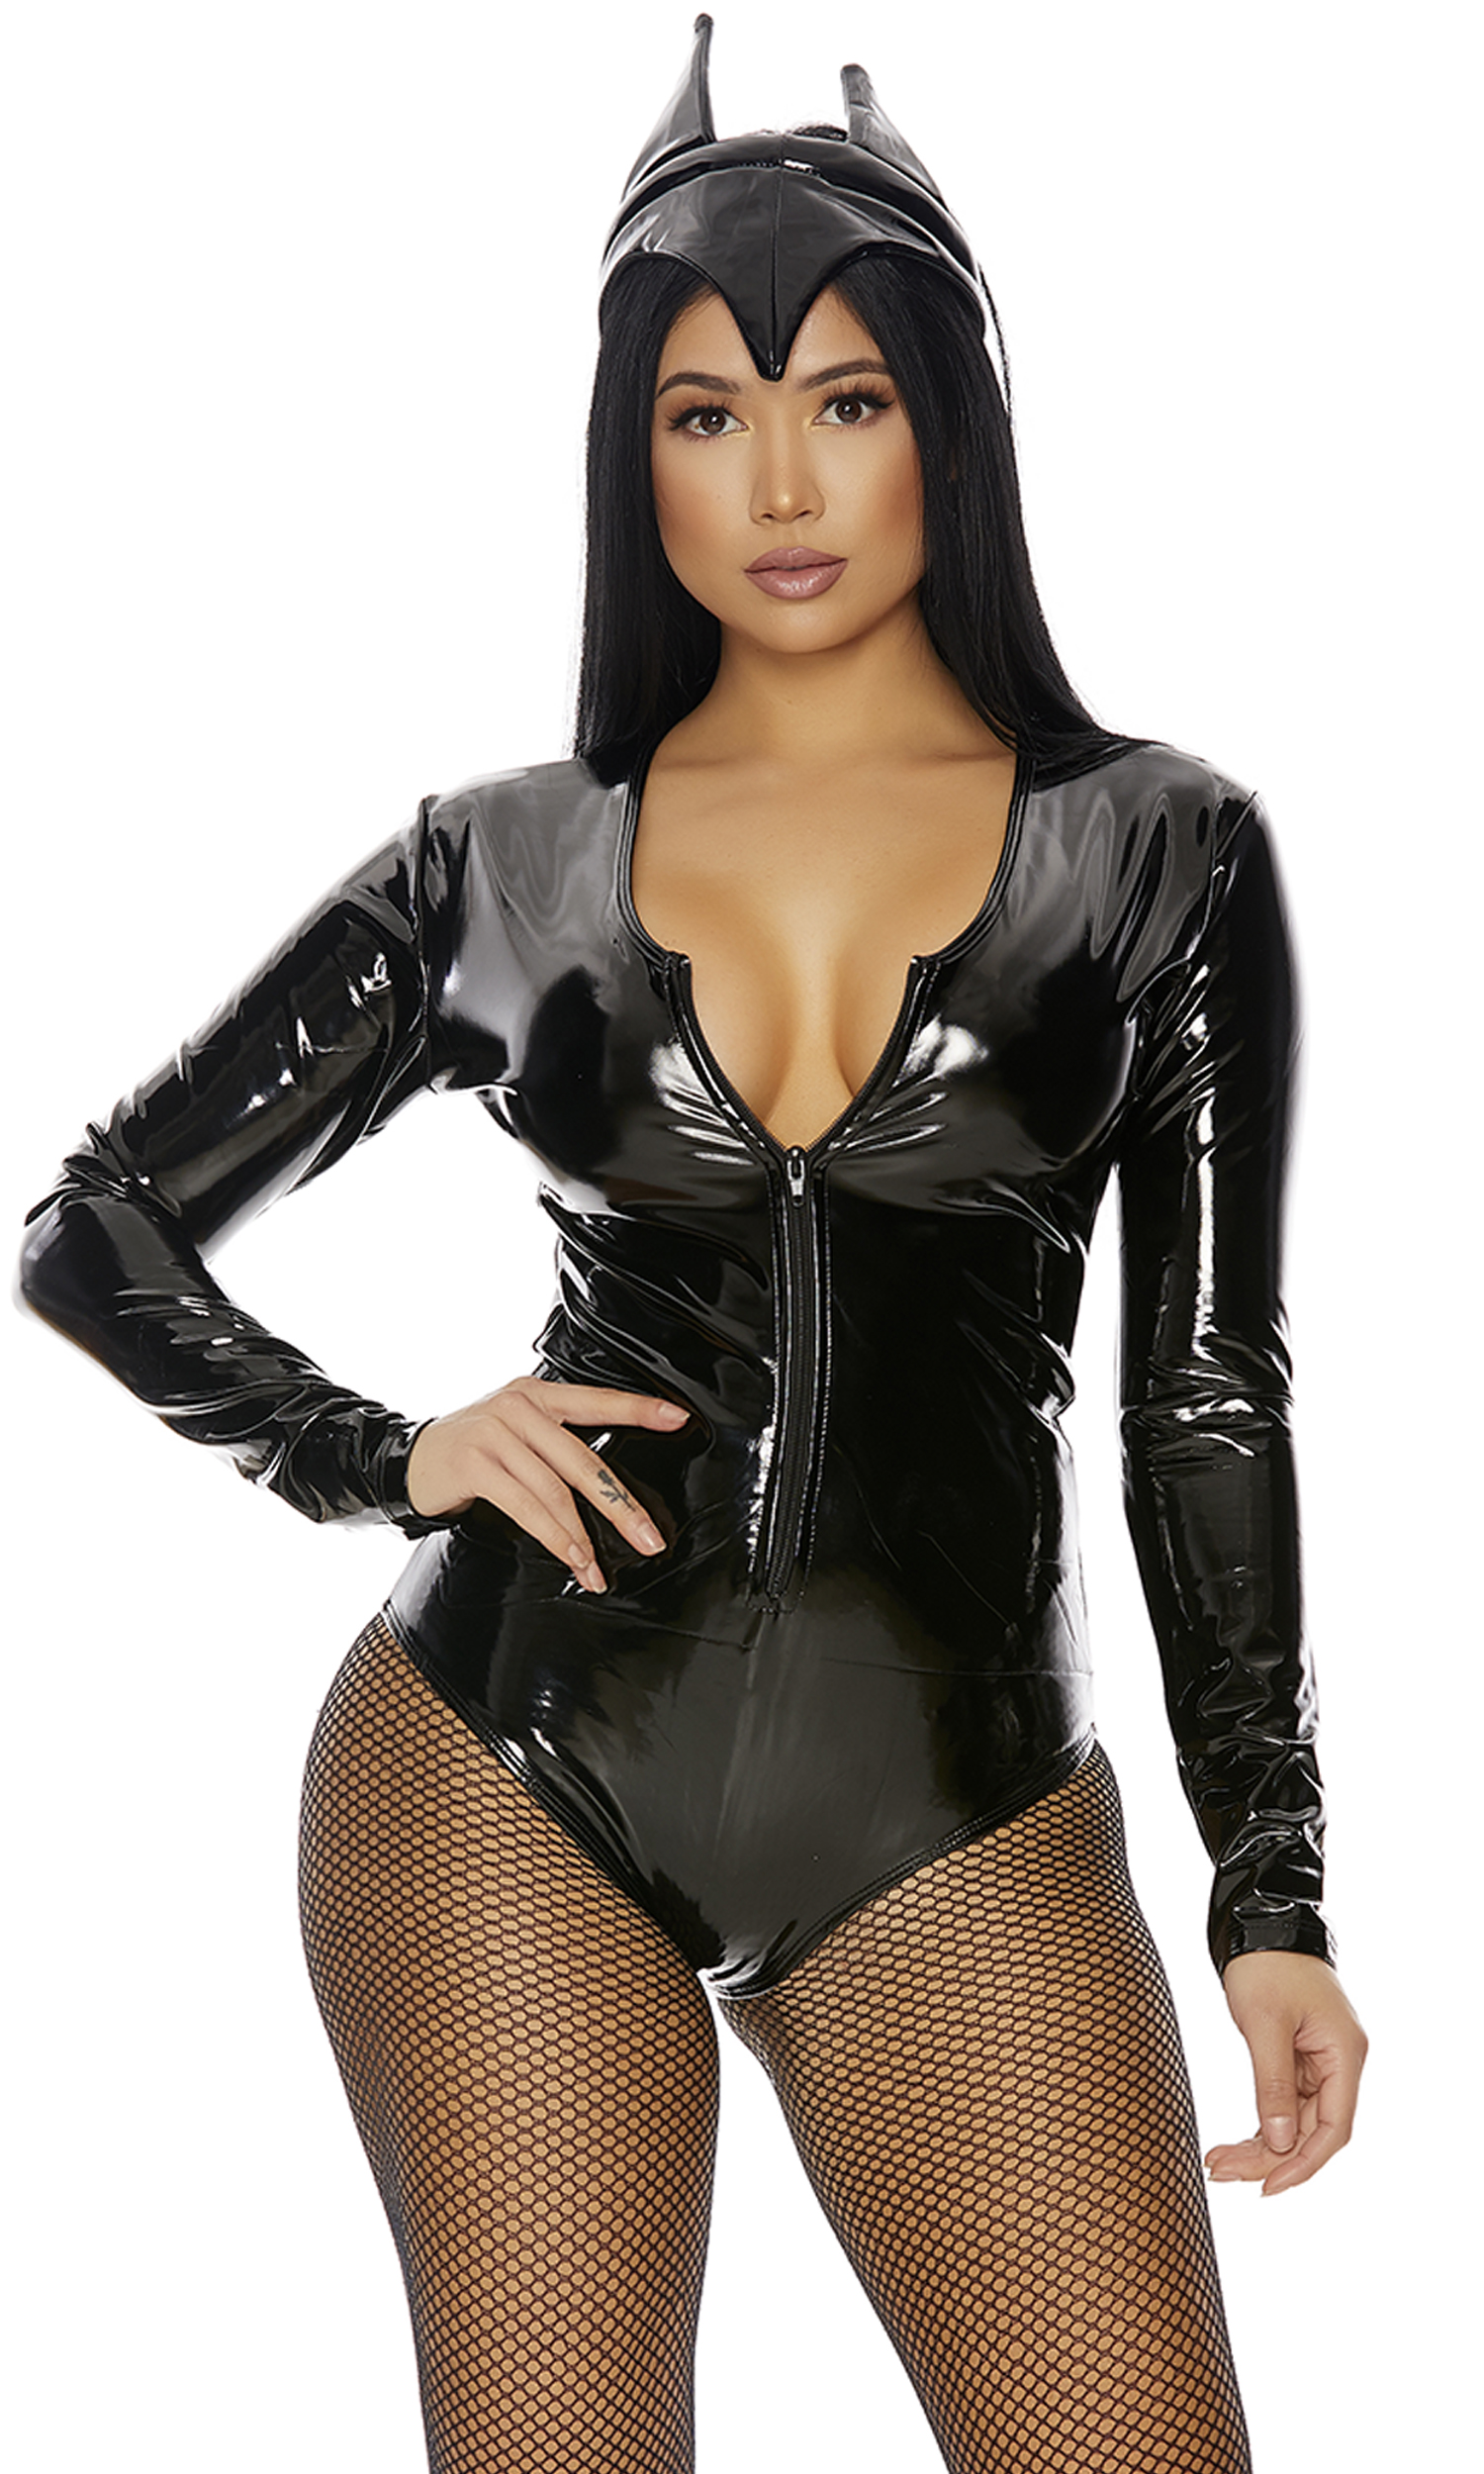 Female domination costumes